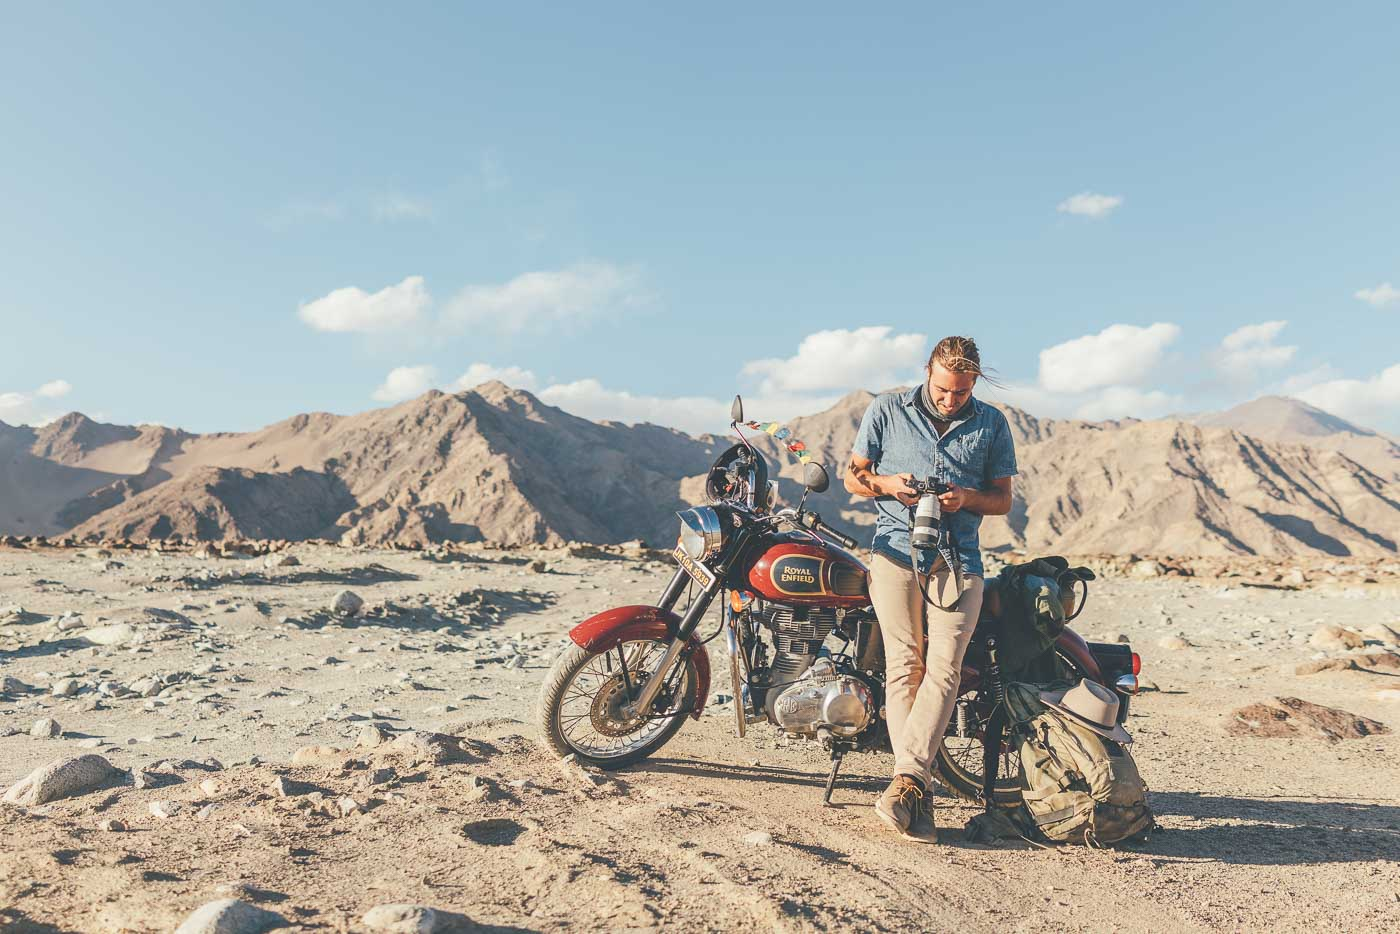 Photographer Stefan Haworth riding a Royal Enfield Motorbike through the Indian Himalayas